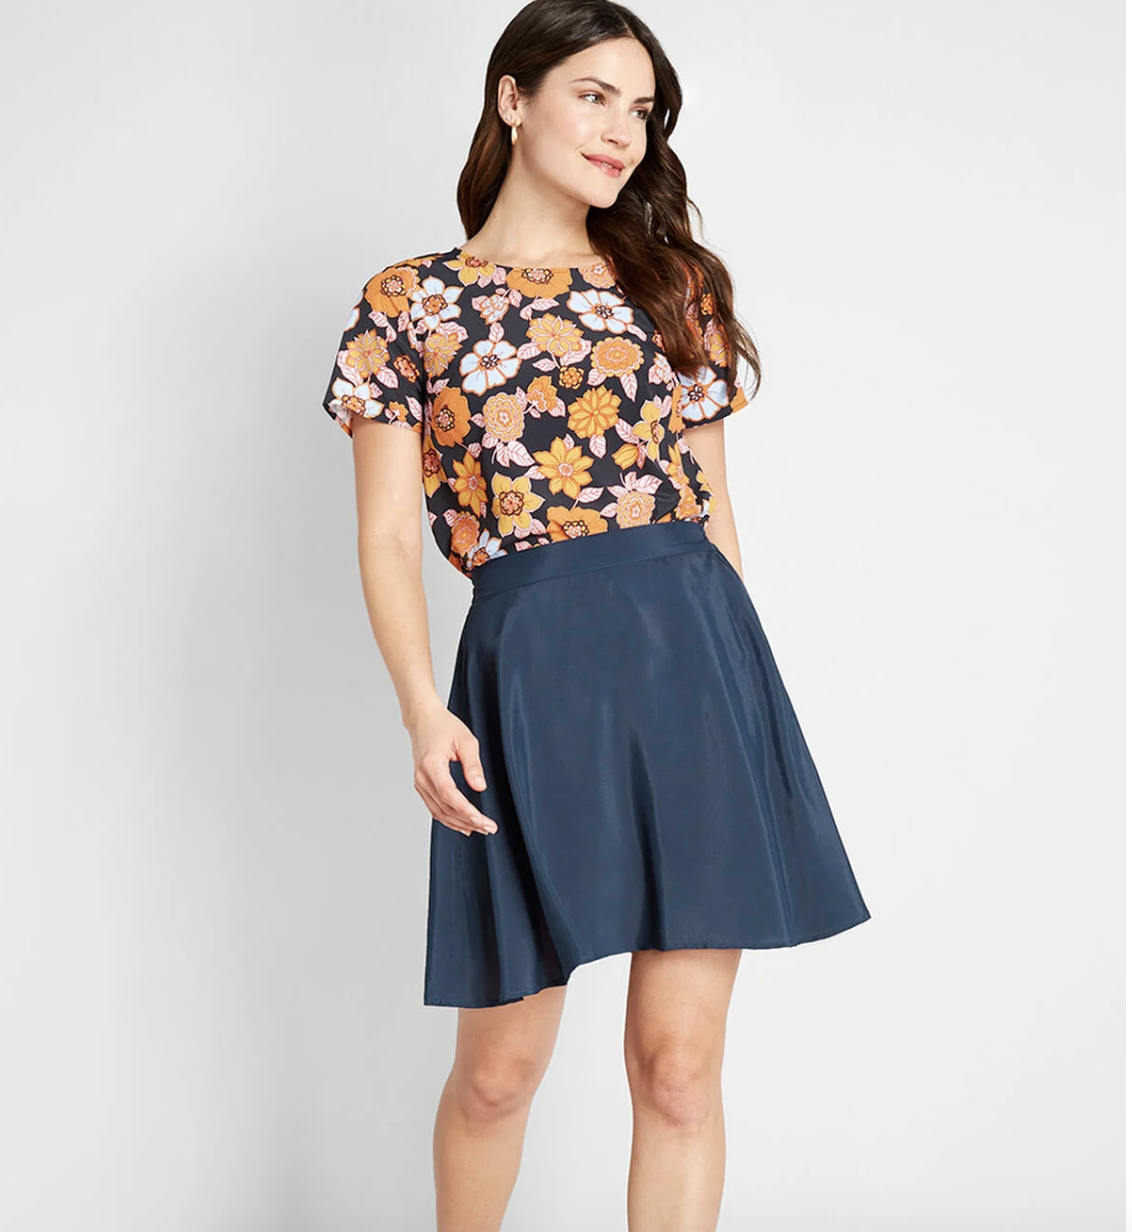 Model in navy high-waisted A-line skirt that falls above the knee